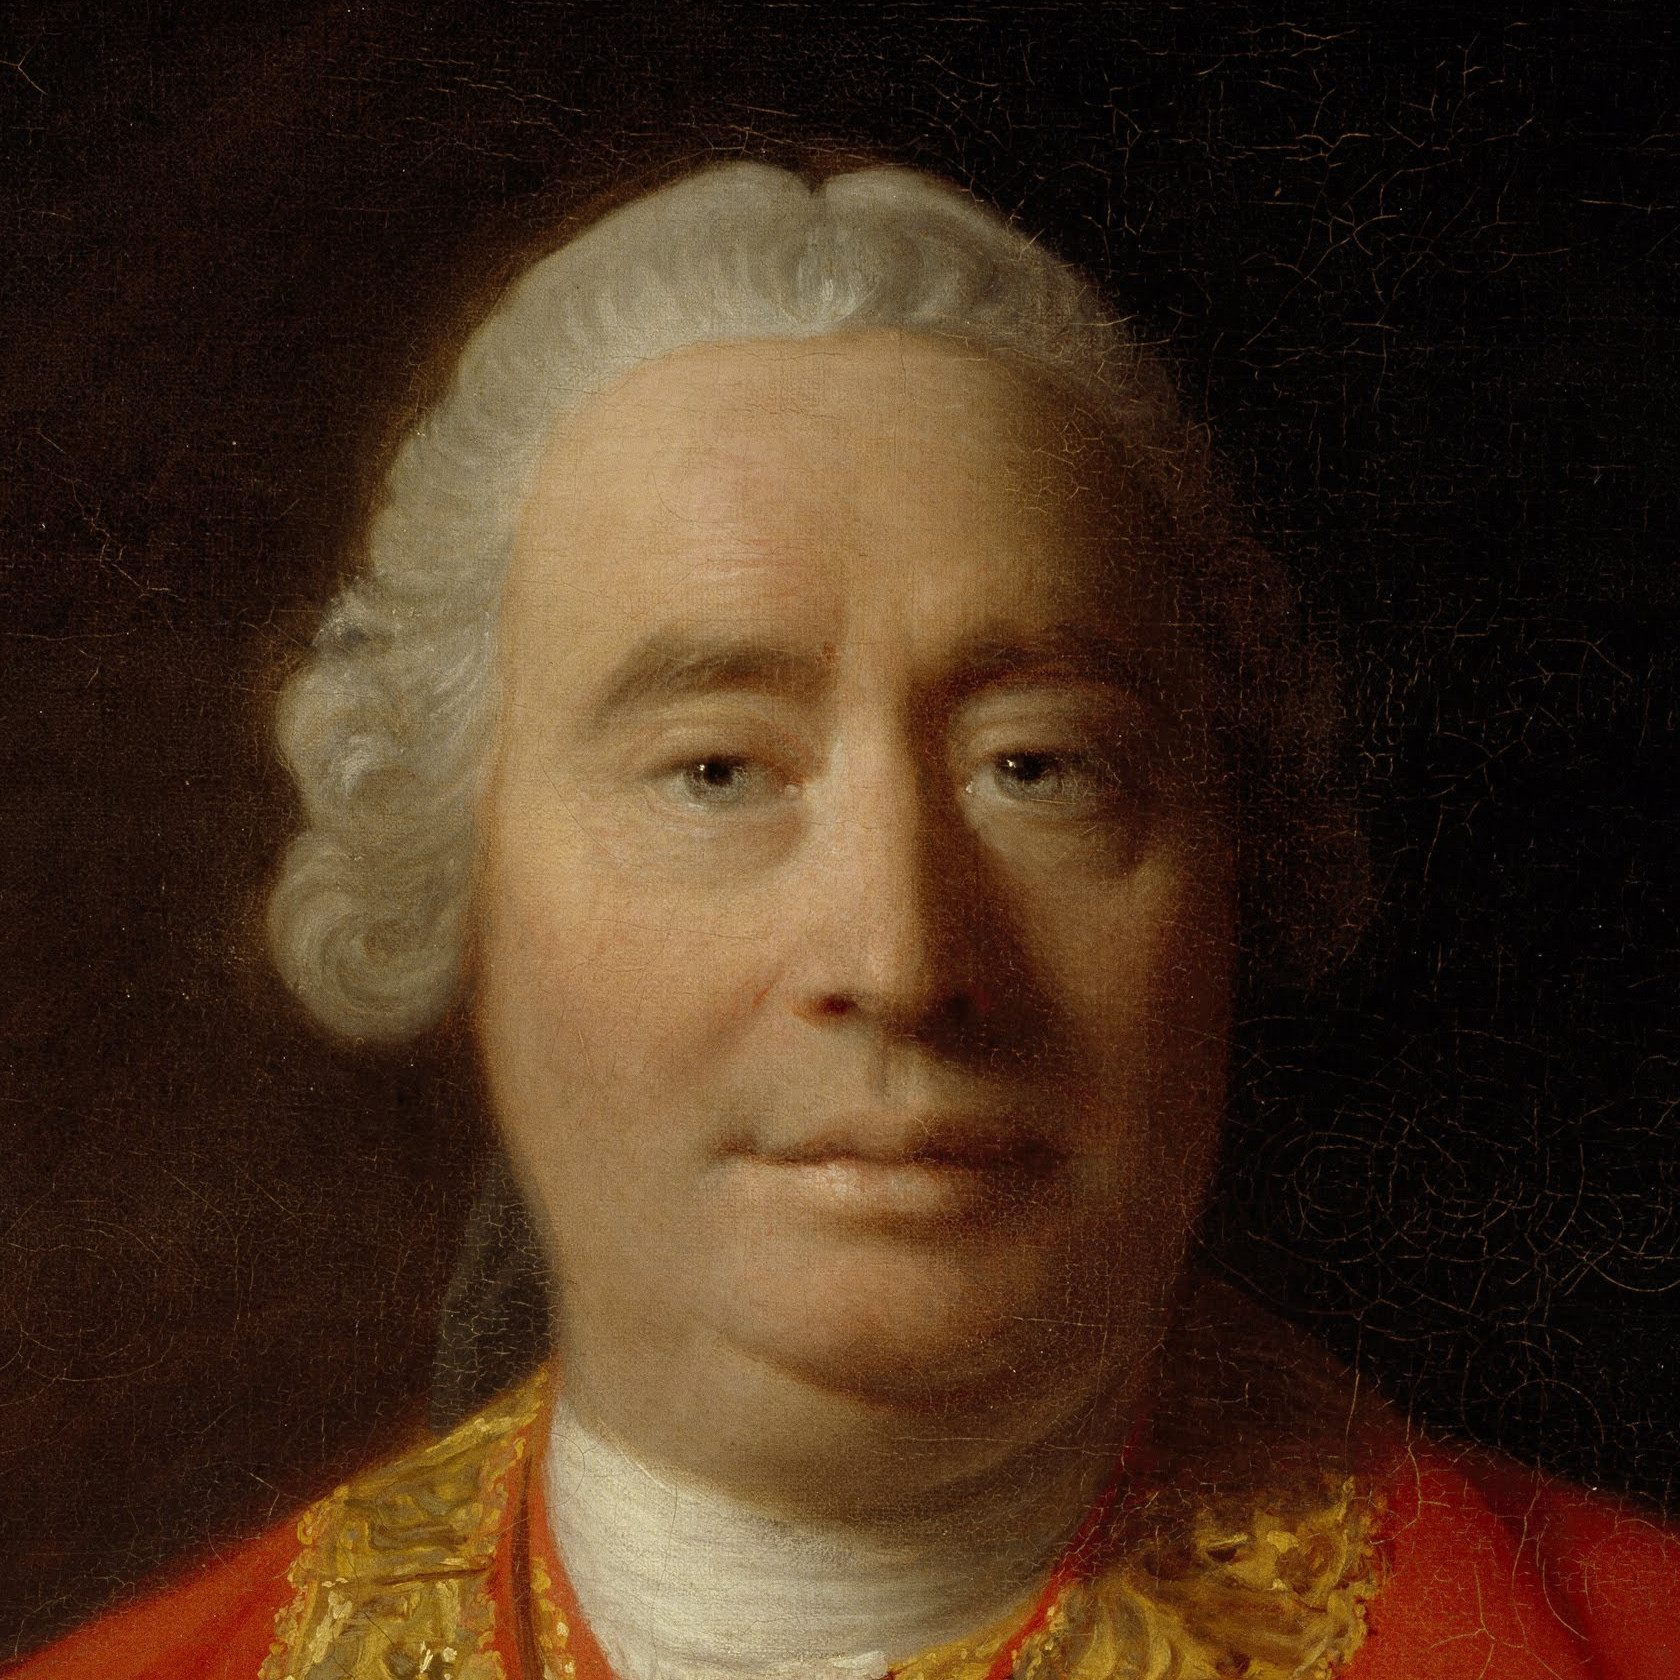 hume philosophy paper Hume on empiricism essays: over 180,000 hume on empiricism essays, hume on empiricism term papers, hume on empiricism research paper.